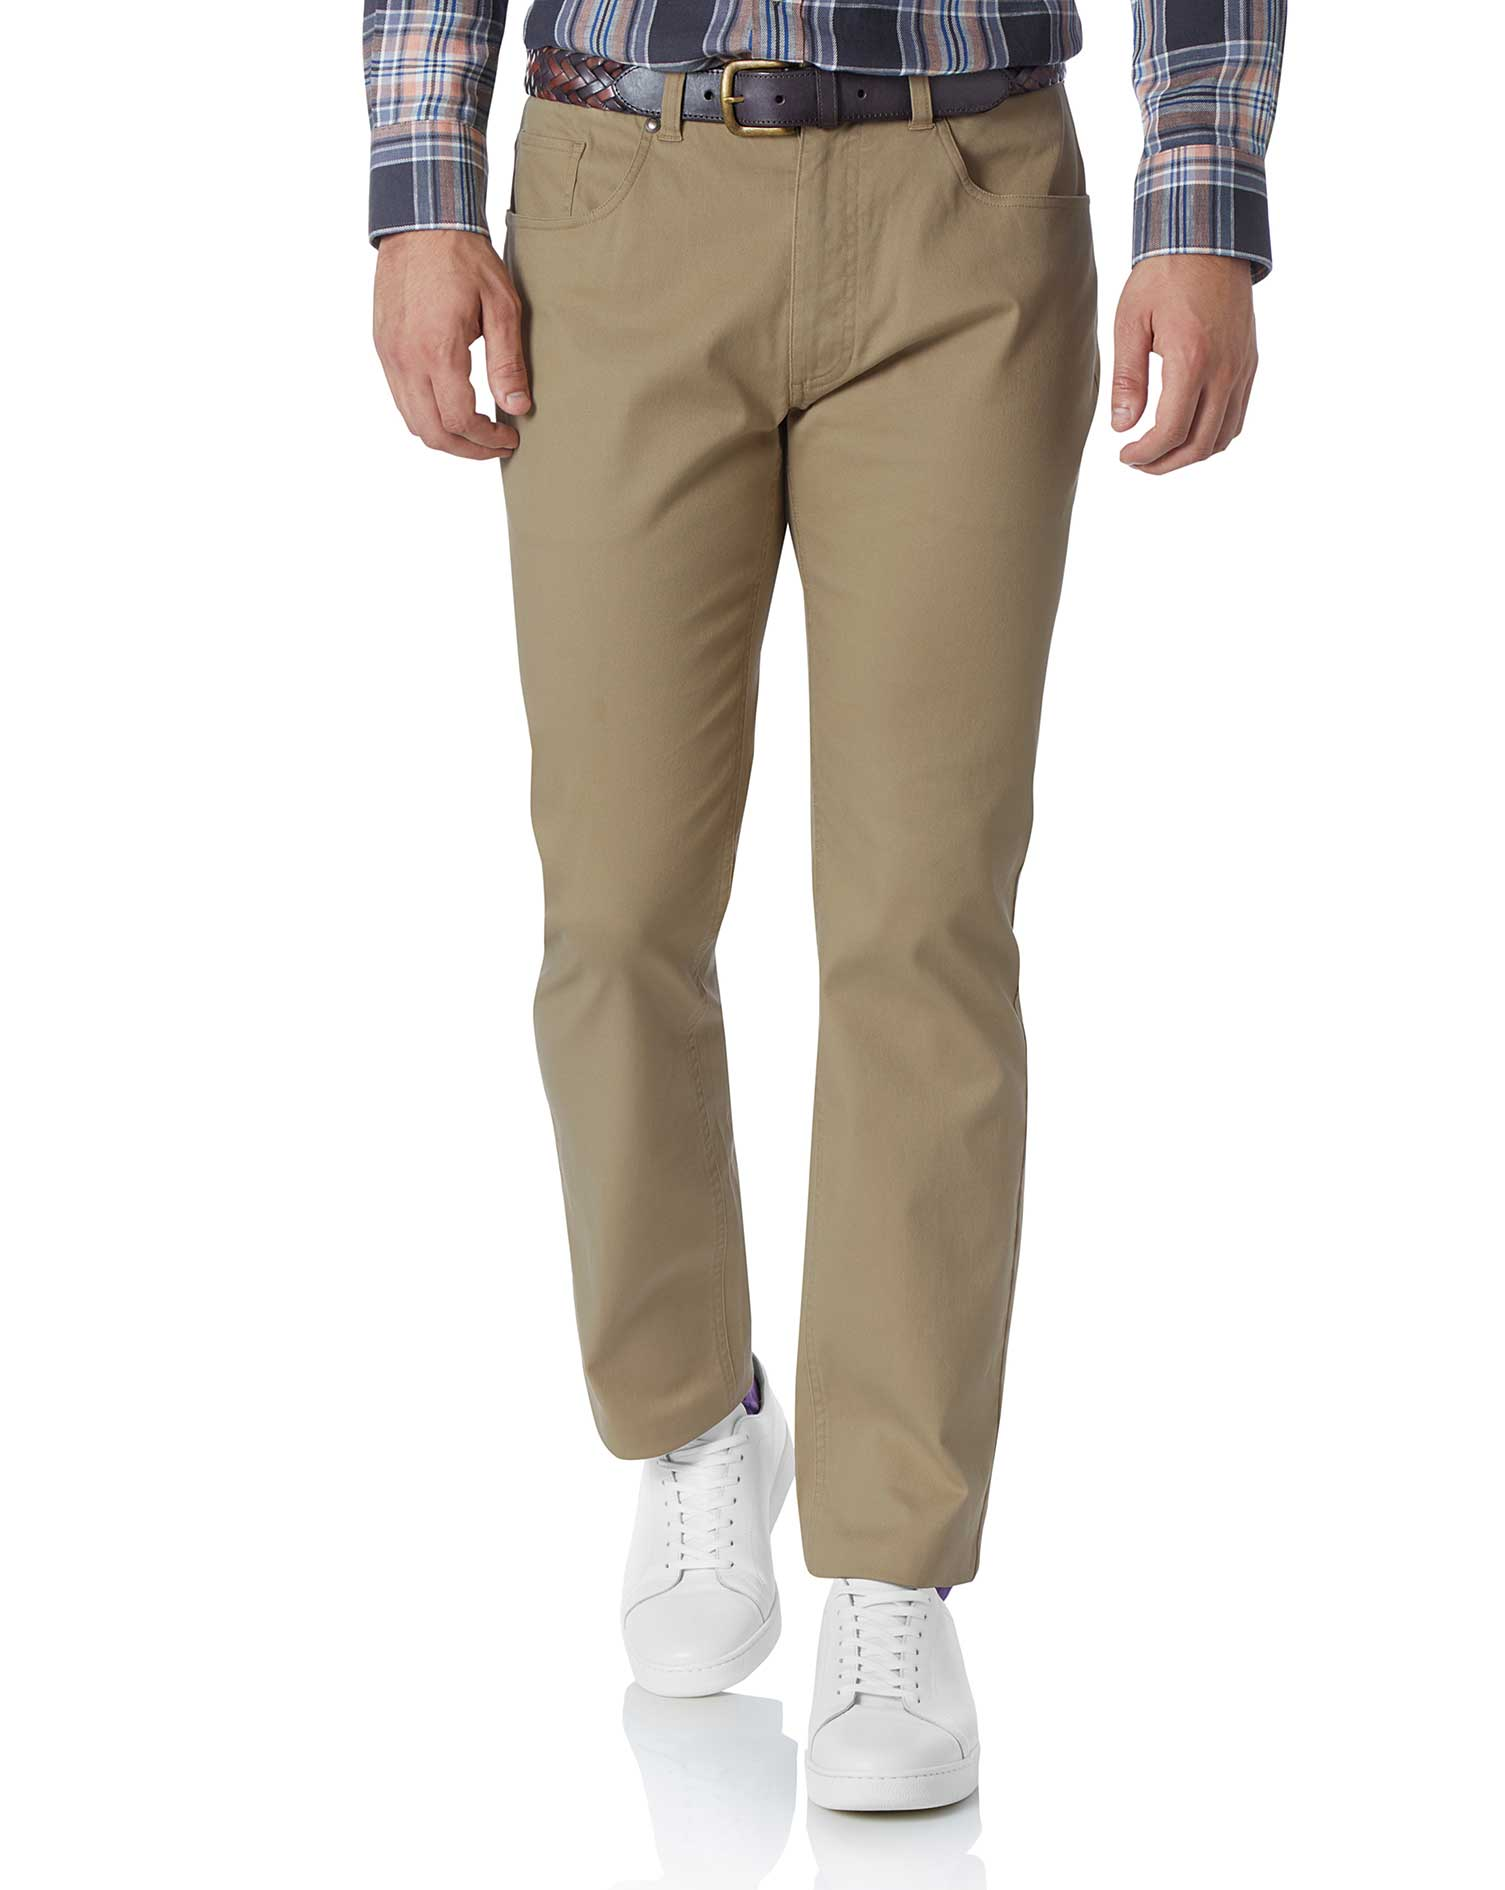 Tan Slim Fit 5 Pocket Trousers Size W40 L30 by Charles Tyrwhitt